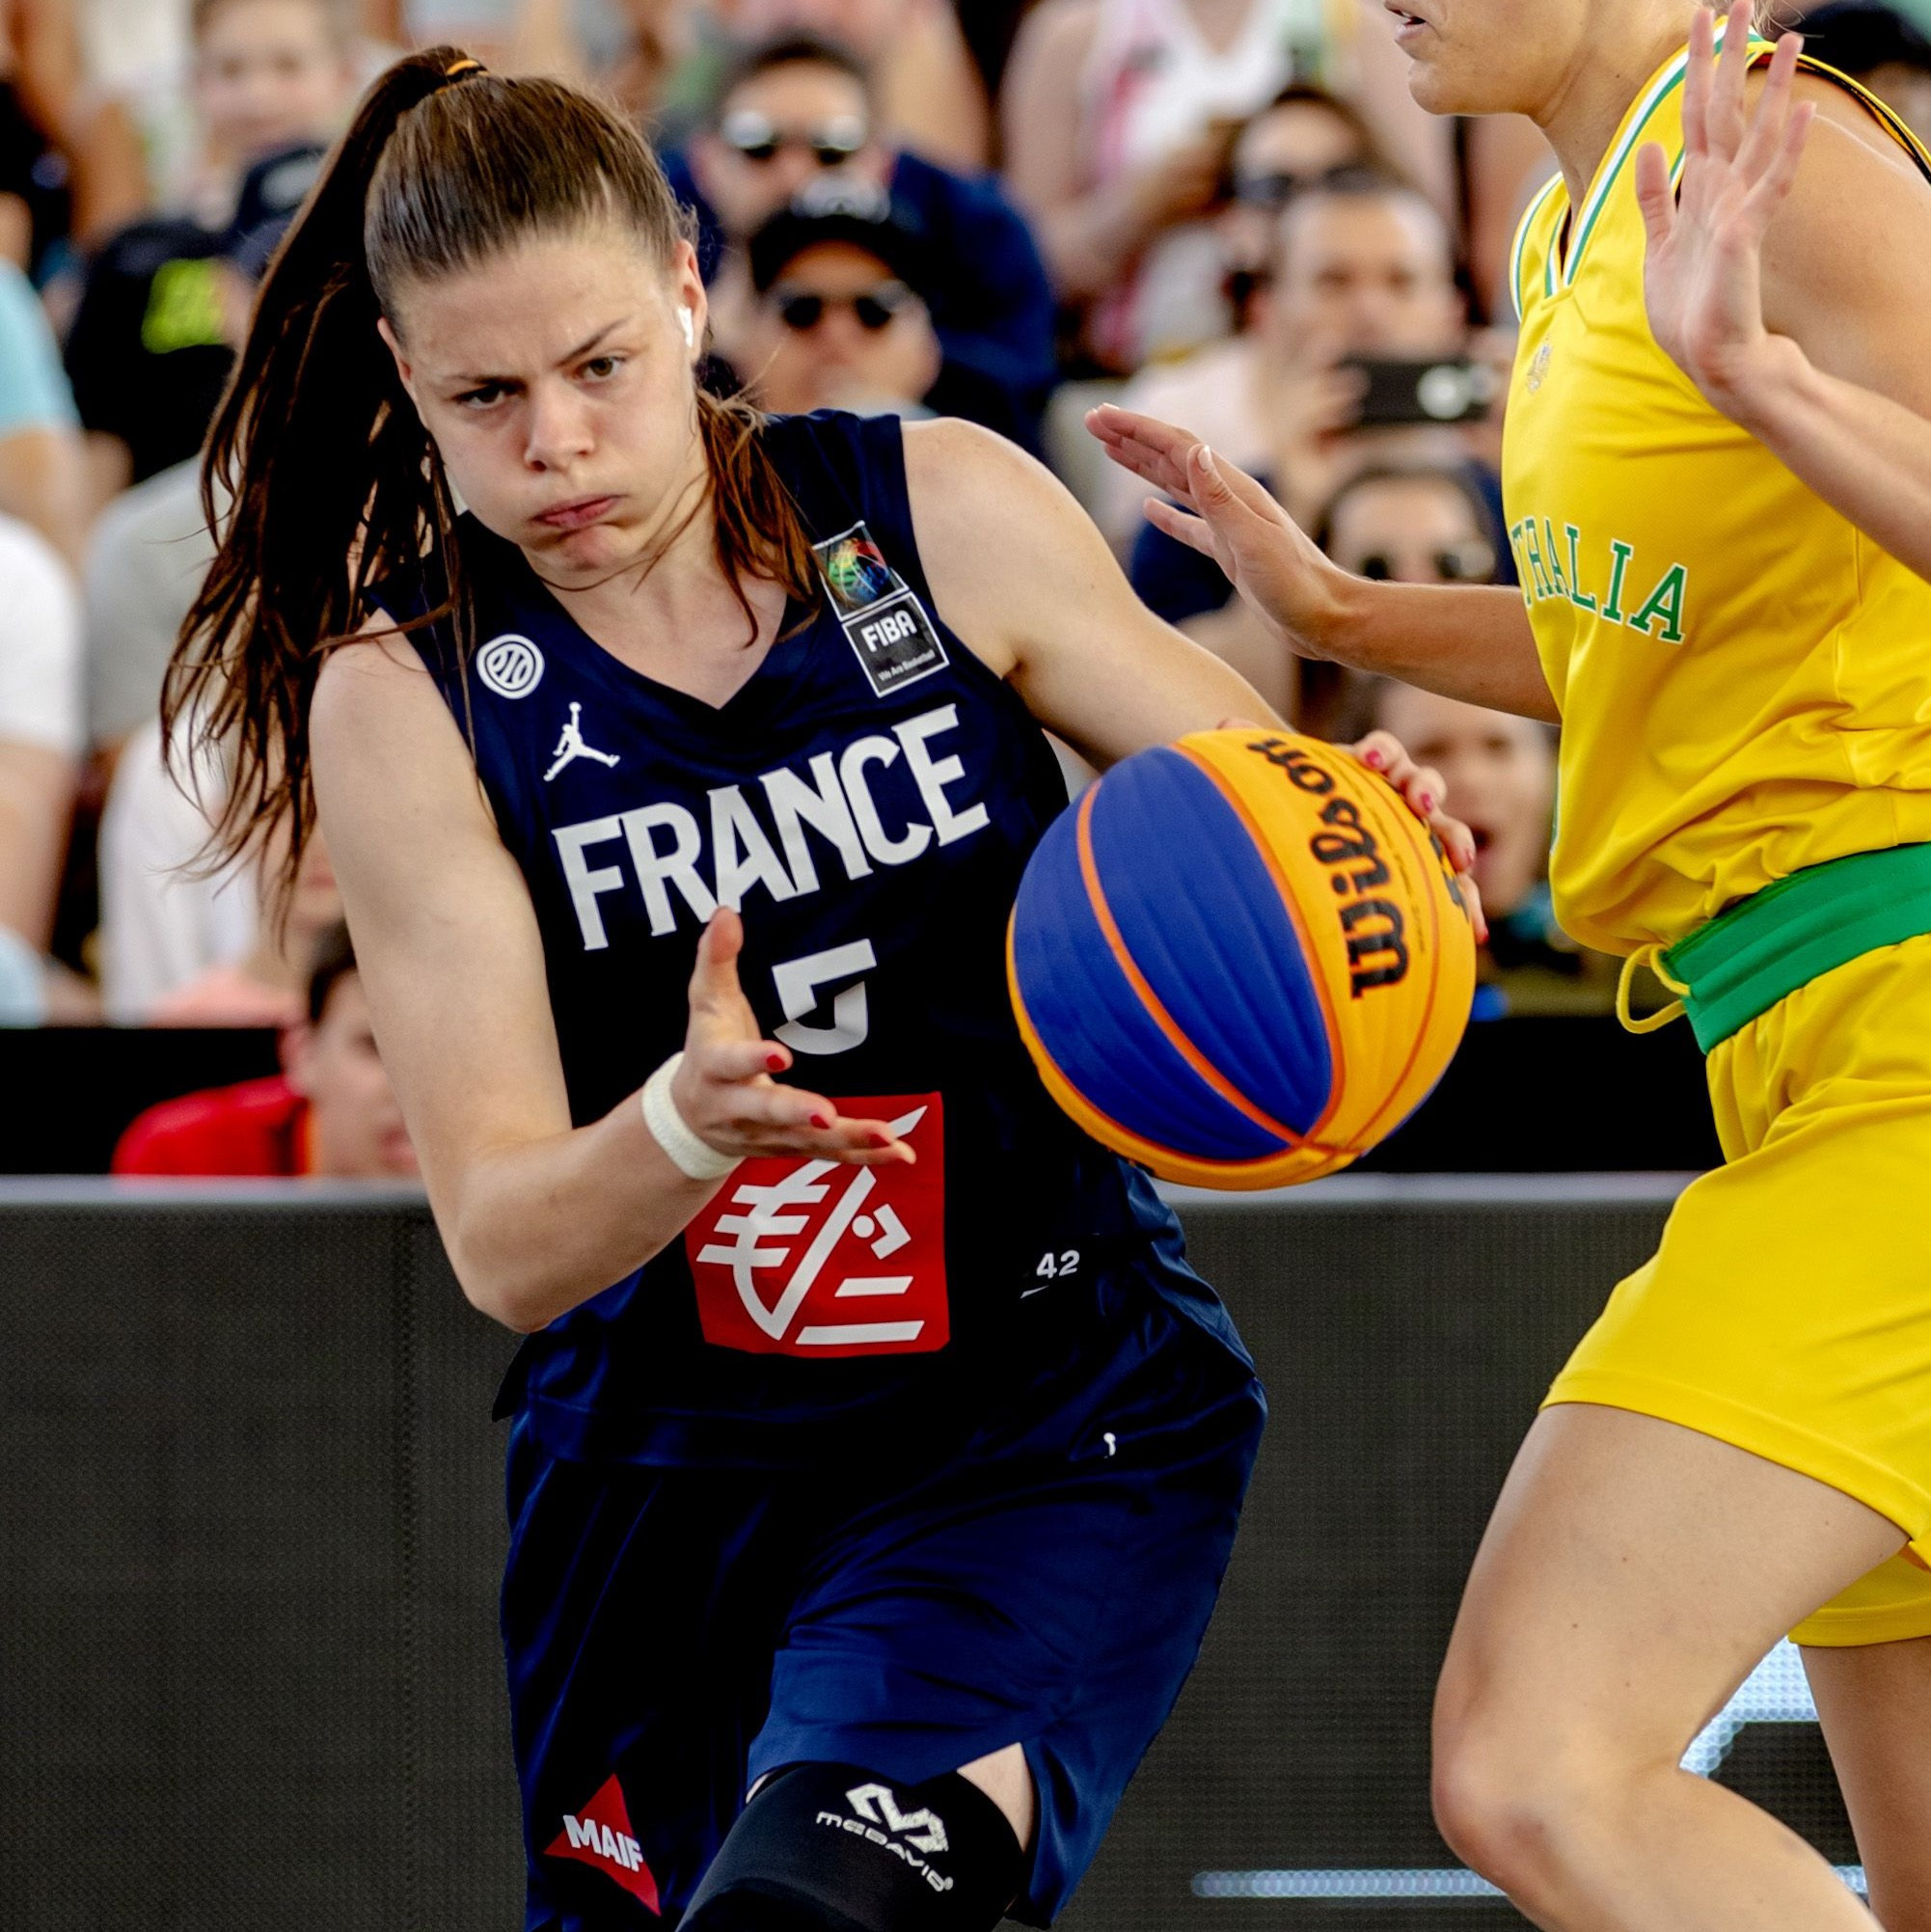 Champions France return to FIBA 3x3 Women's Series with home-court advantage